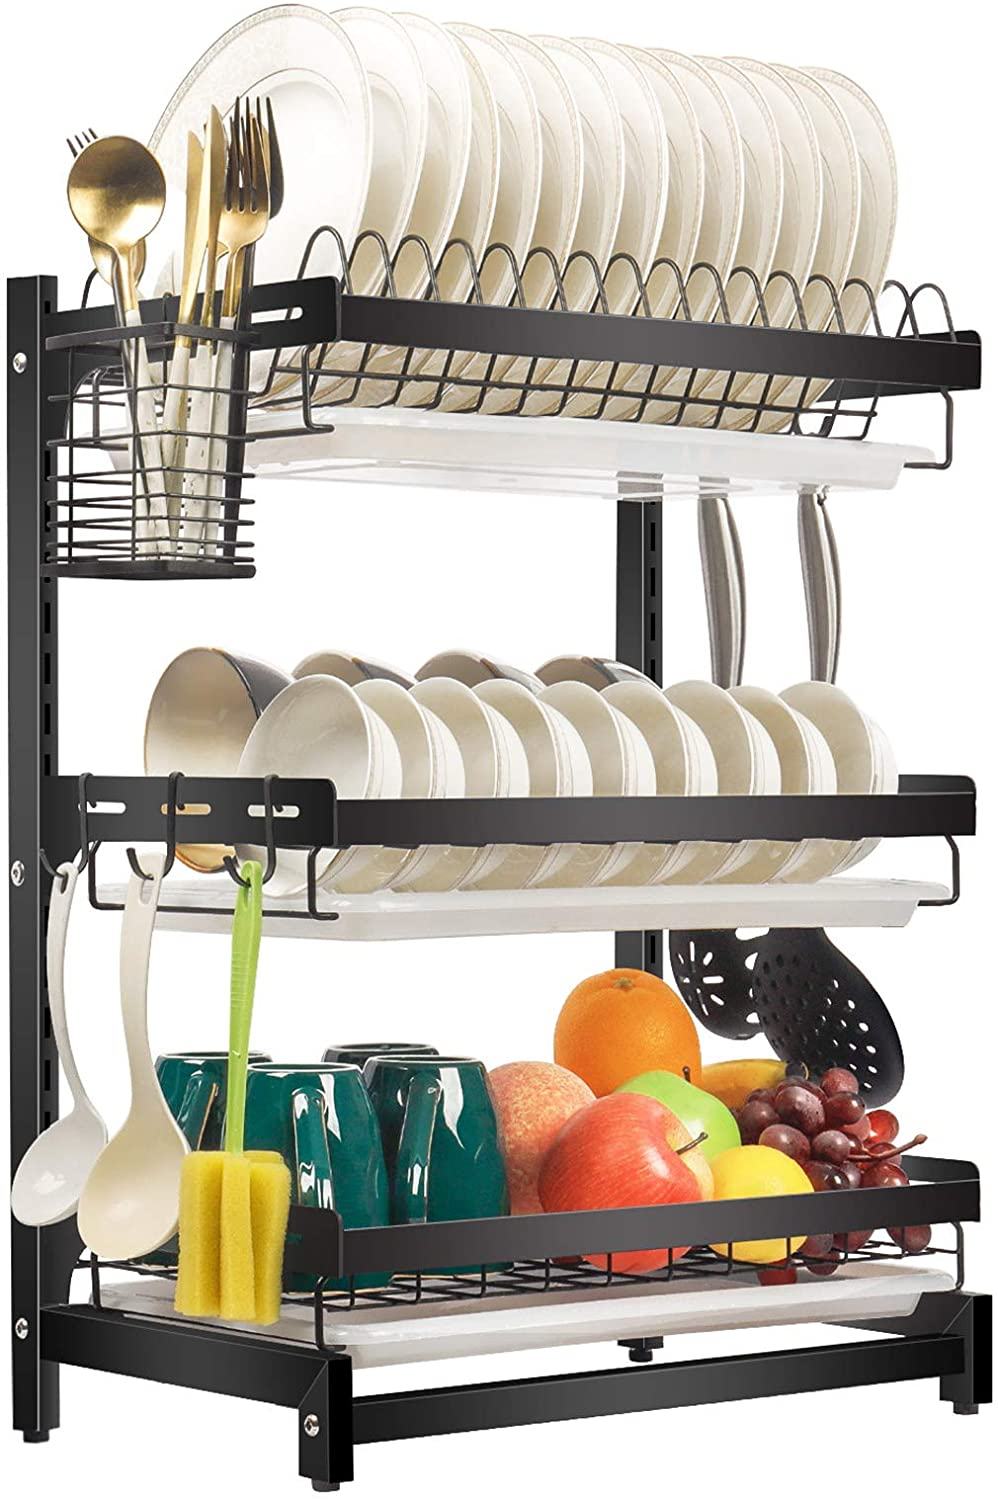 X Cosrack Dish Drying Rack Stainless Steel Dish Drainer With Drainboard Utensil Holder For Plates Bowls Cups For Kitchen Countertop Detachable 3 Tier Black Patent Pending